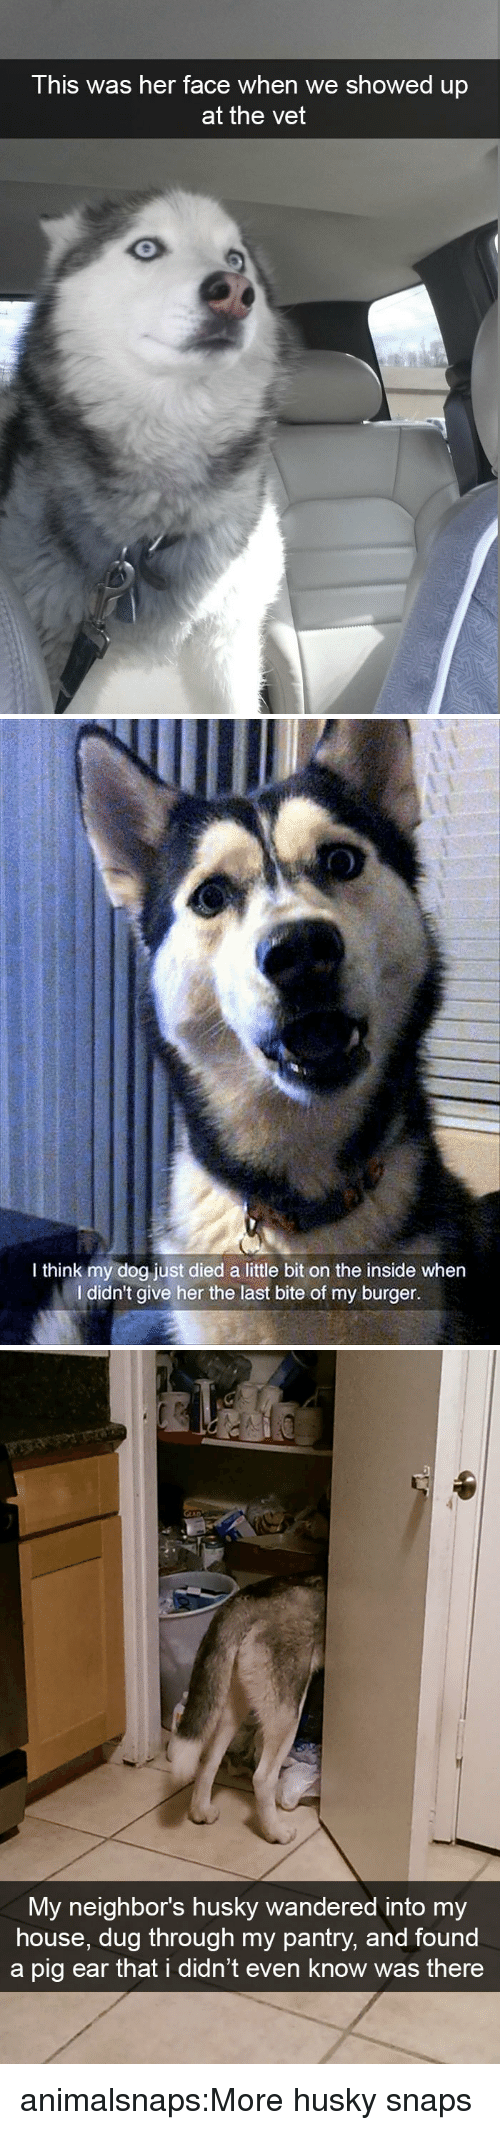 My House, Target, and Tumblr: This was her face when we showed up  at the vet   0  I think my dog just died a little bit on the inside when  I didn't give her the last bite of my burger.   My neighbor's husky wandered into my  house, dug through my pantry, and found  a pig ear that i didn't even know was there animalsnaps:More husky snaps